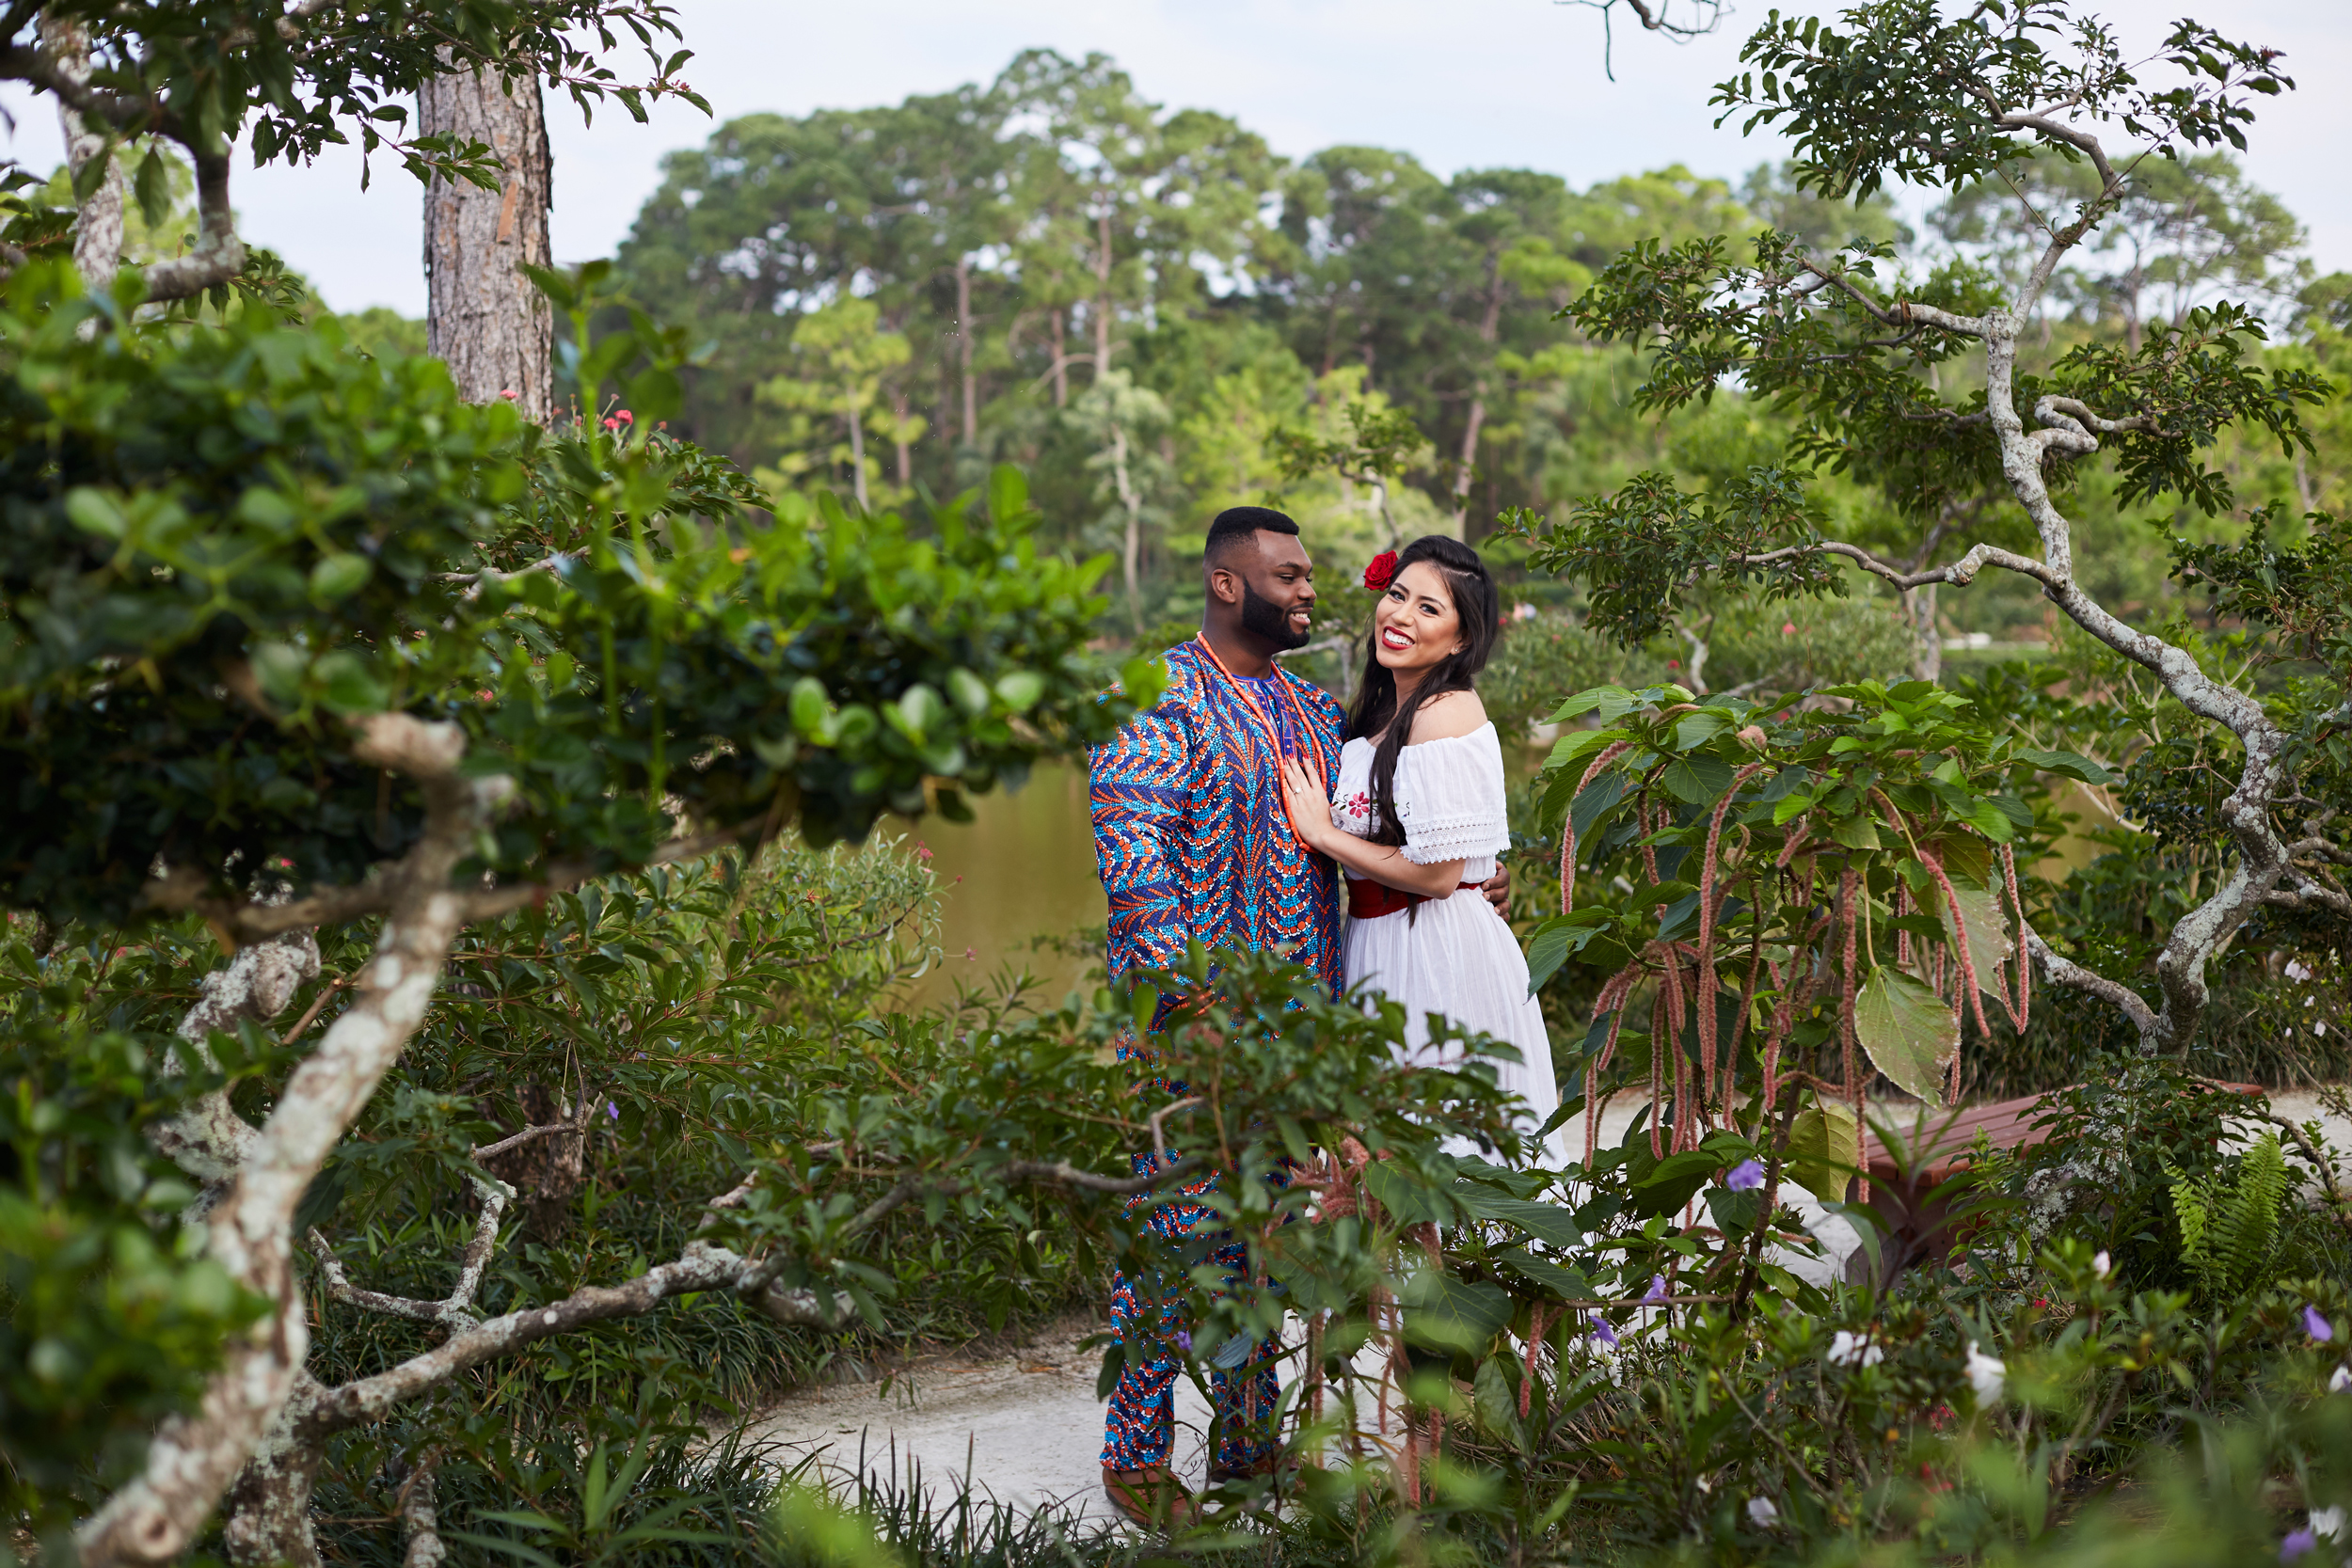 A wedding, engagement, love, newlywed image of a bride in her wedding dress with African groom -taken by Miami Wedding Photographer, Javier Edwards of El Roi Photo, in Miami, Florida, for a Miami Wedding